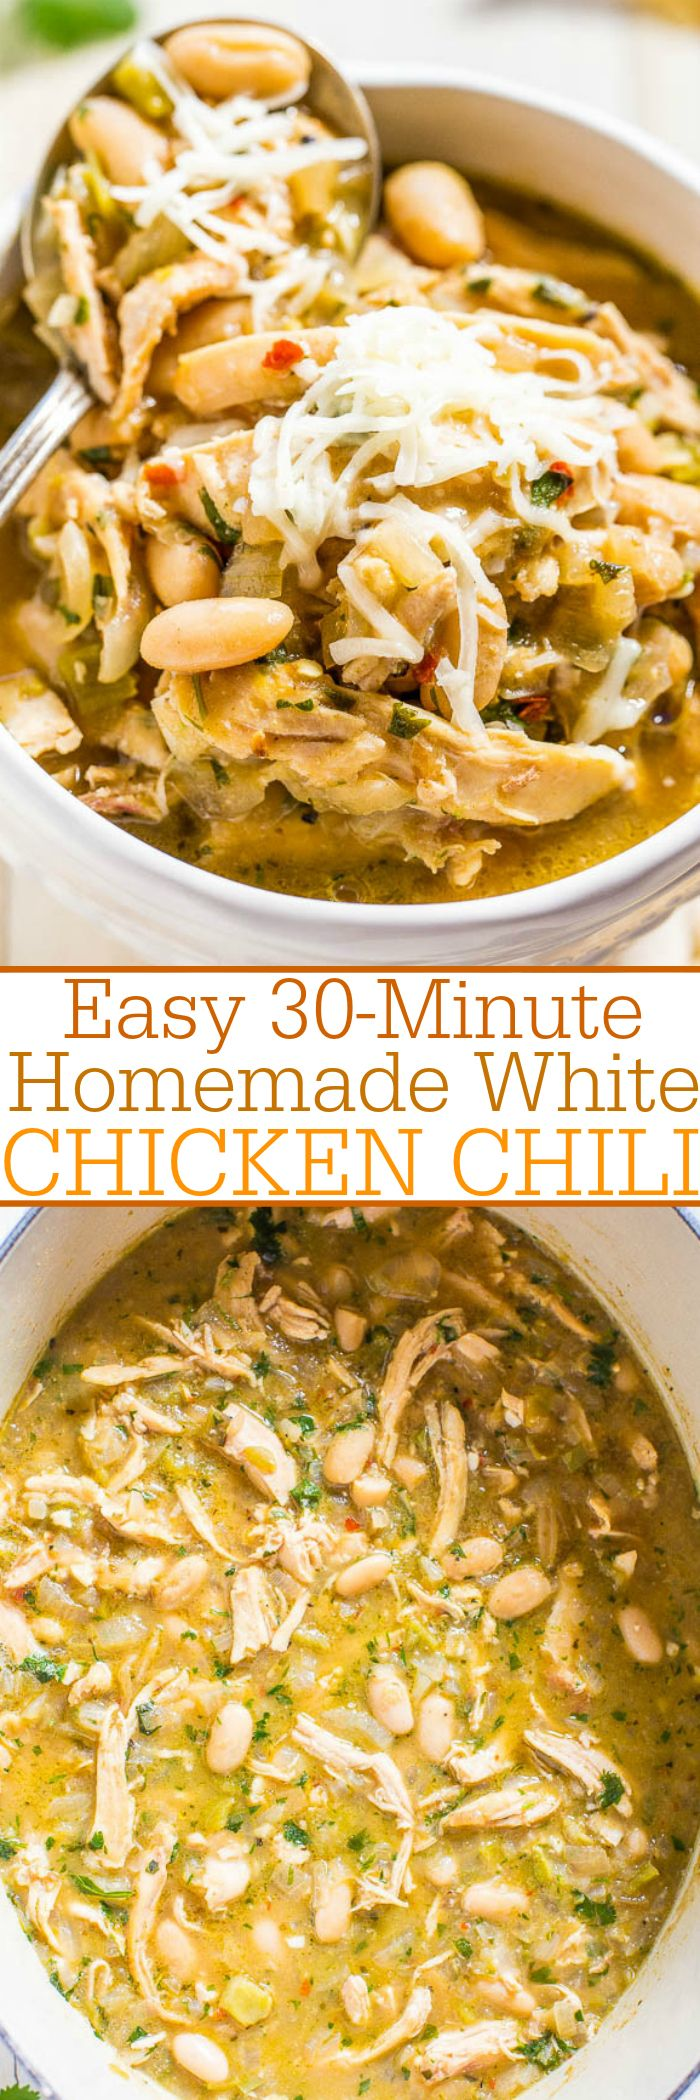 Easy 30-Minute Homemade White Chicken Chili – Hearty, healthy, loaded with tender chicken, and packed